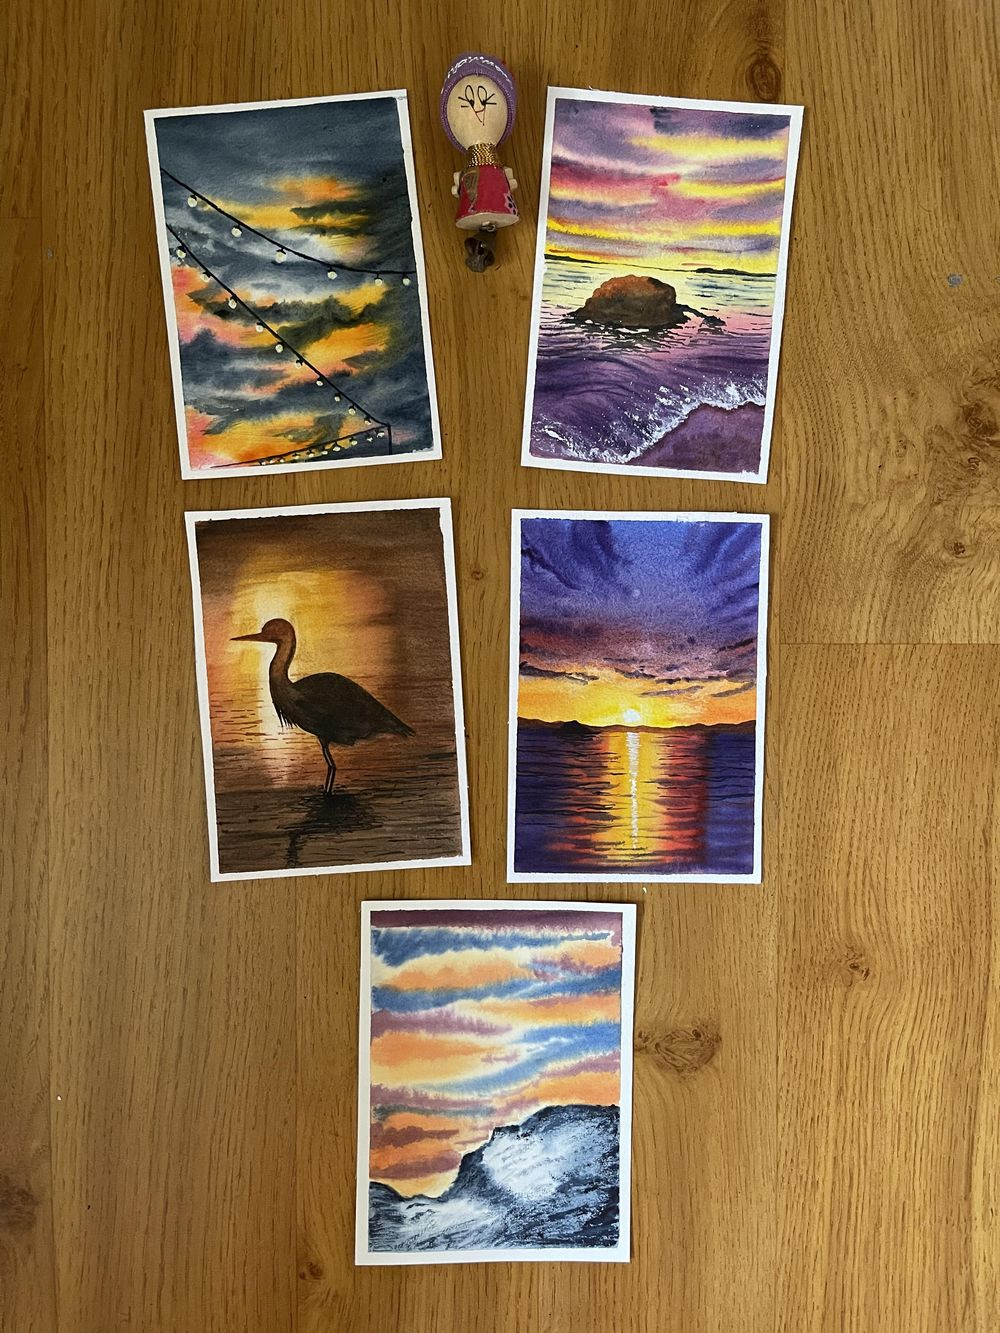 21 shades of sunset - image 17 - student project